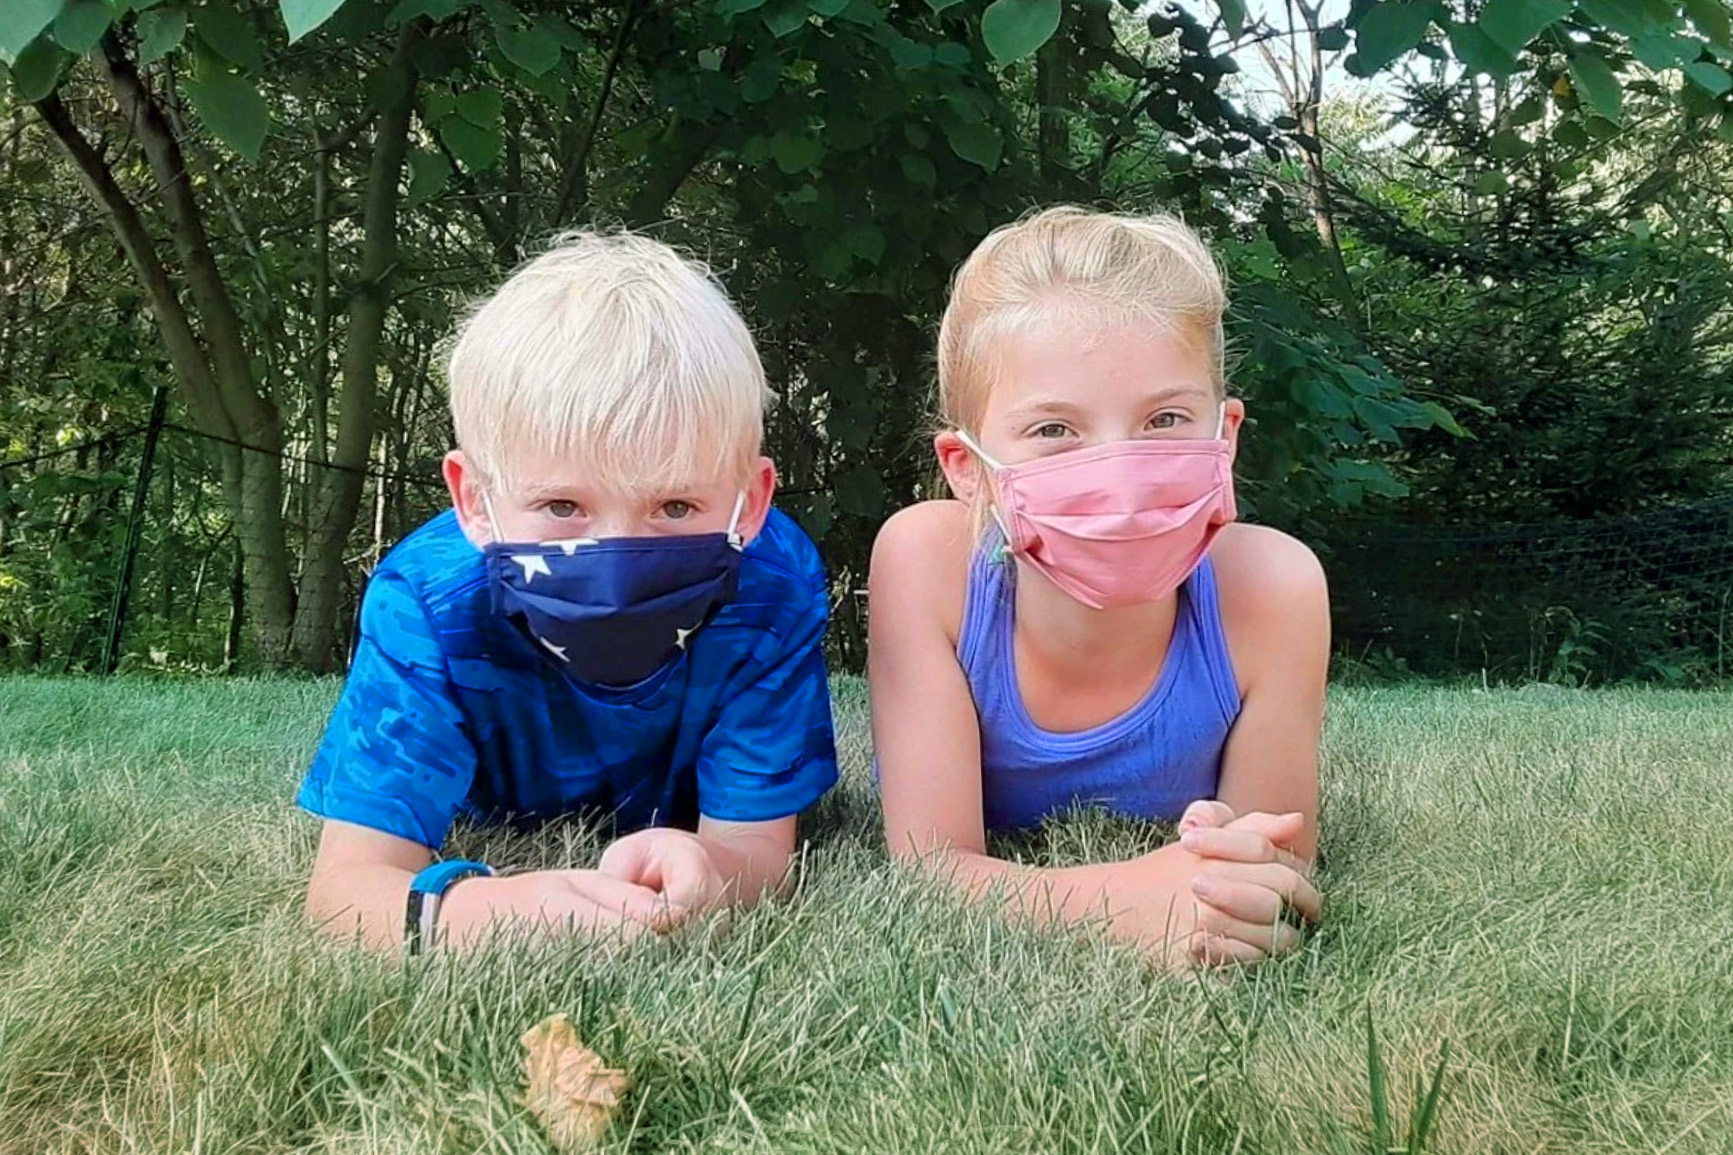 Kids with masks in grass